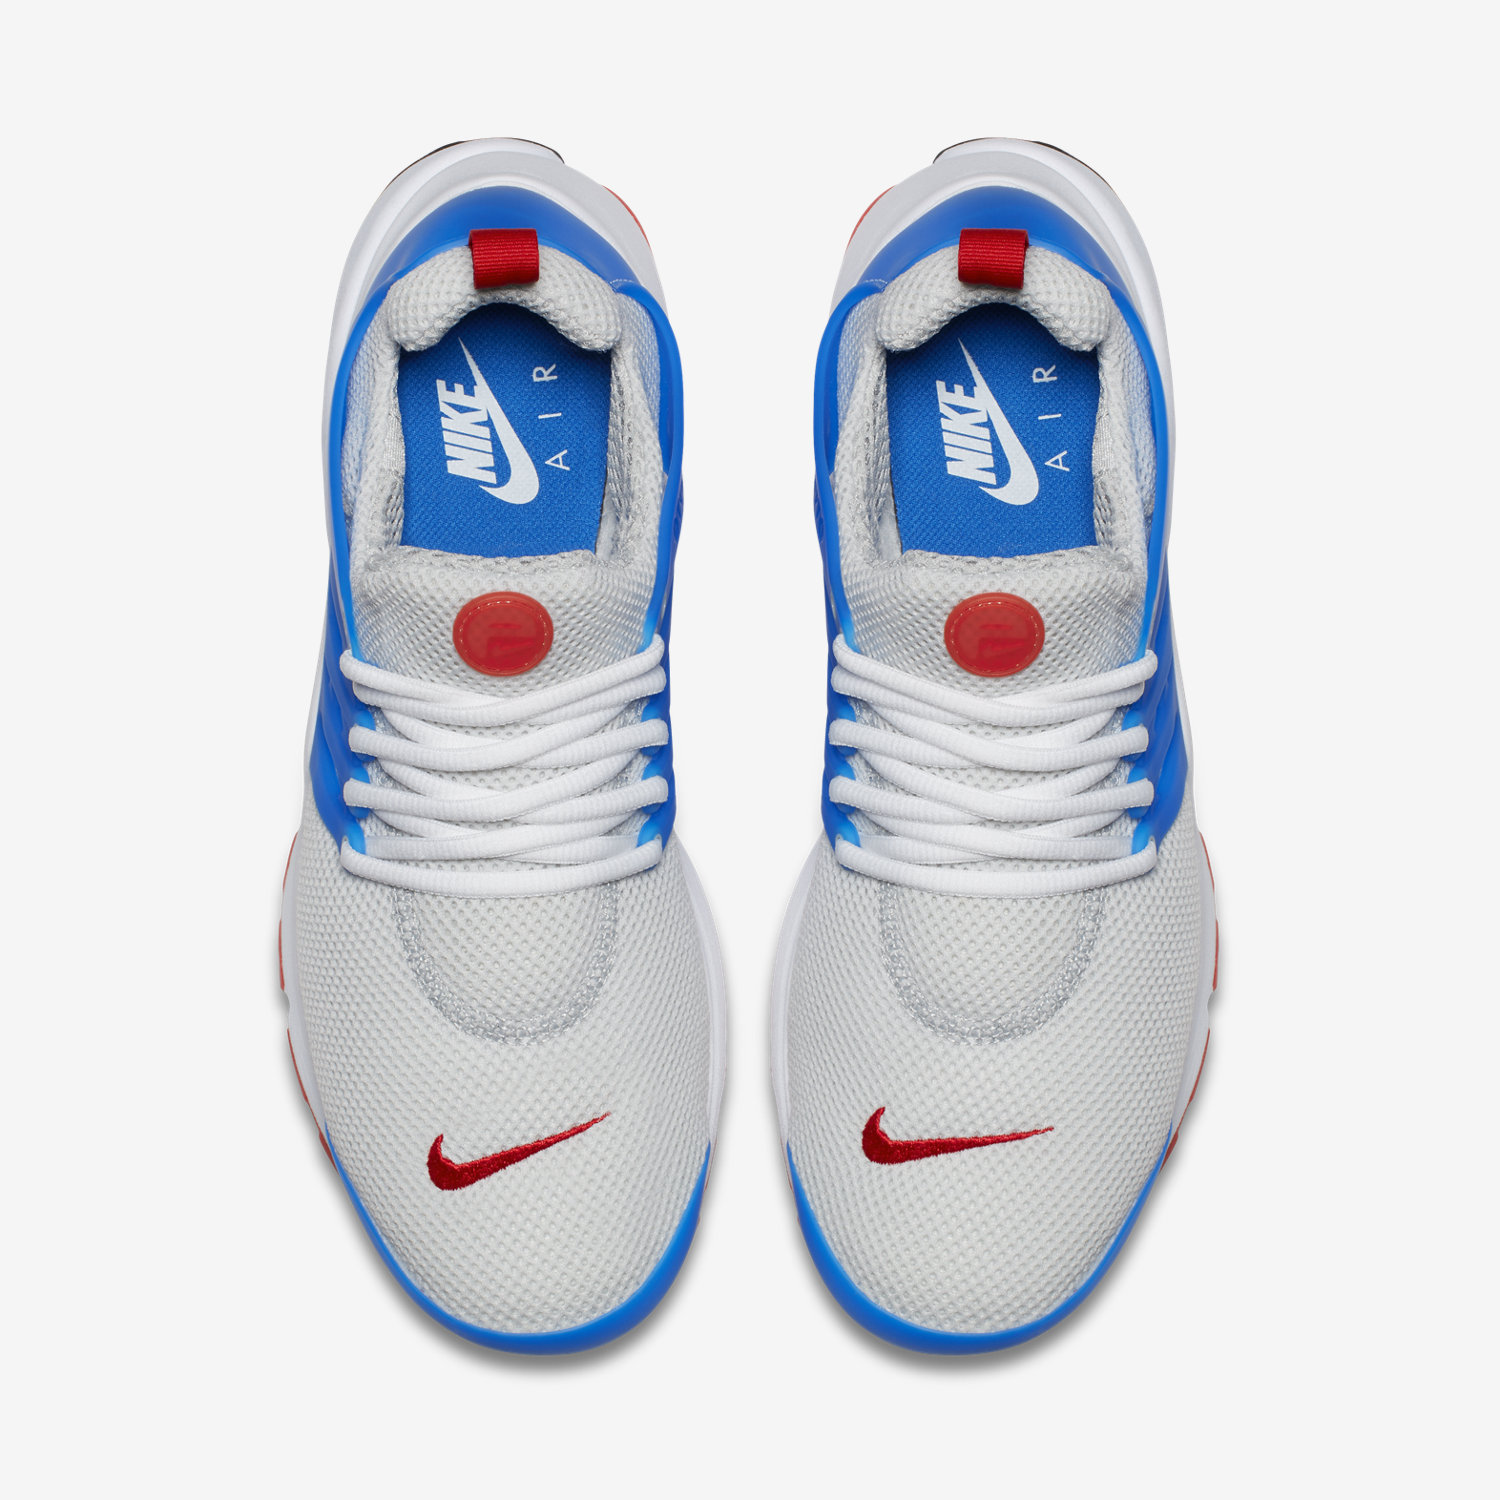 http://images.nike.com/is/image/DotCom/PDP_HERO_ZOOM/NIKE-AIR-PRESTO-ESSENTIAL-848187_004_D_PREM.jpg